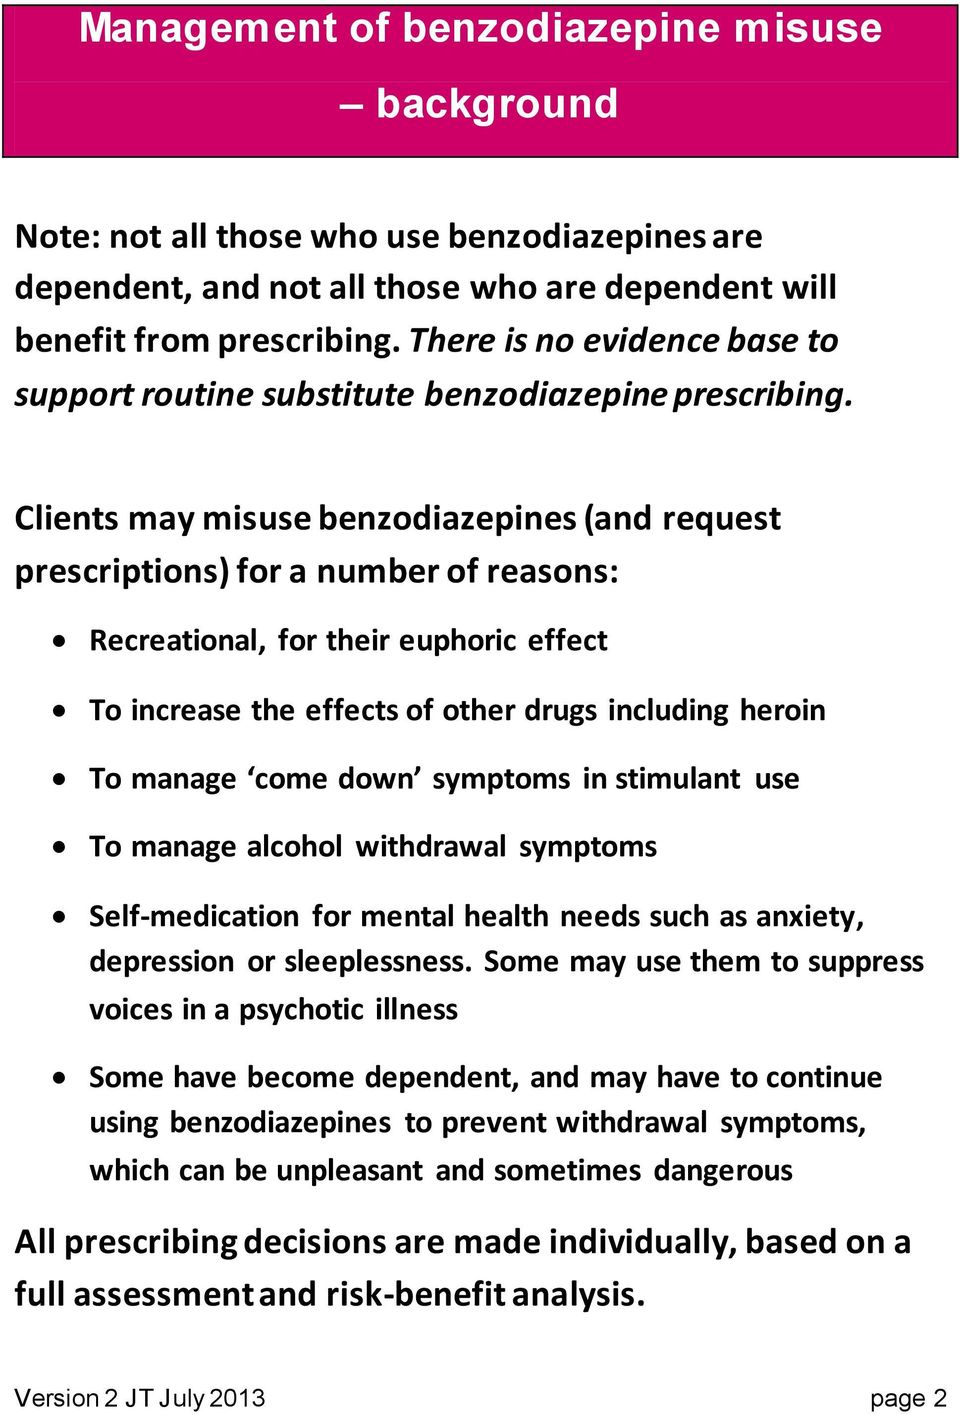 Clients may misuse benzodiazepines (and request prescriptions) for a number of reans: Recreational, for their euphoric effect To increase the effects of other drugs including heroin To manage come